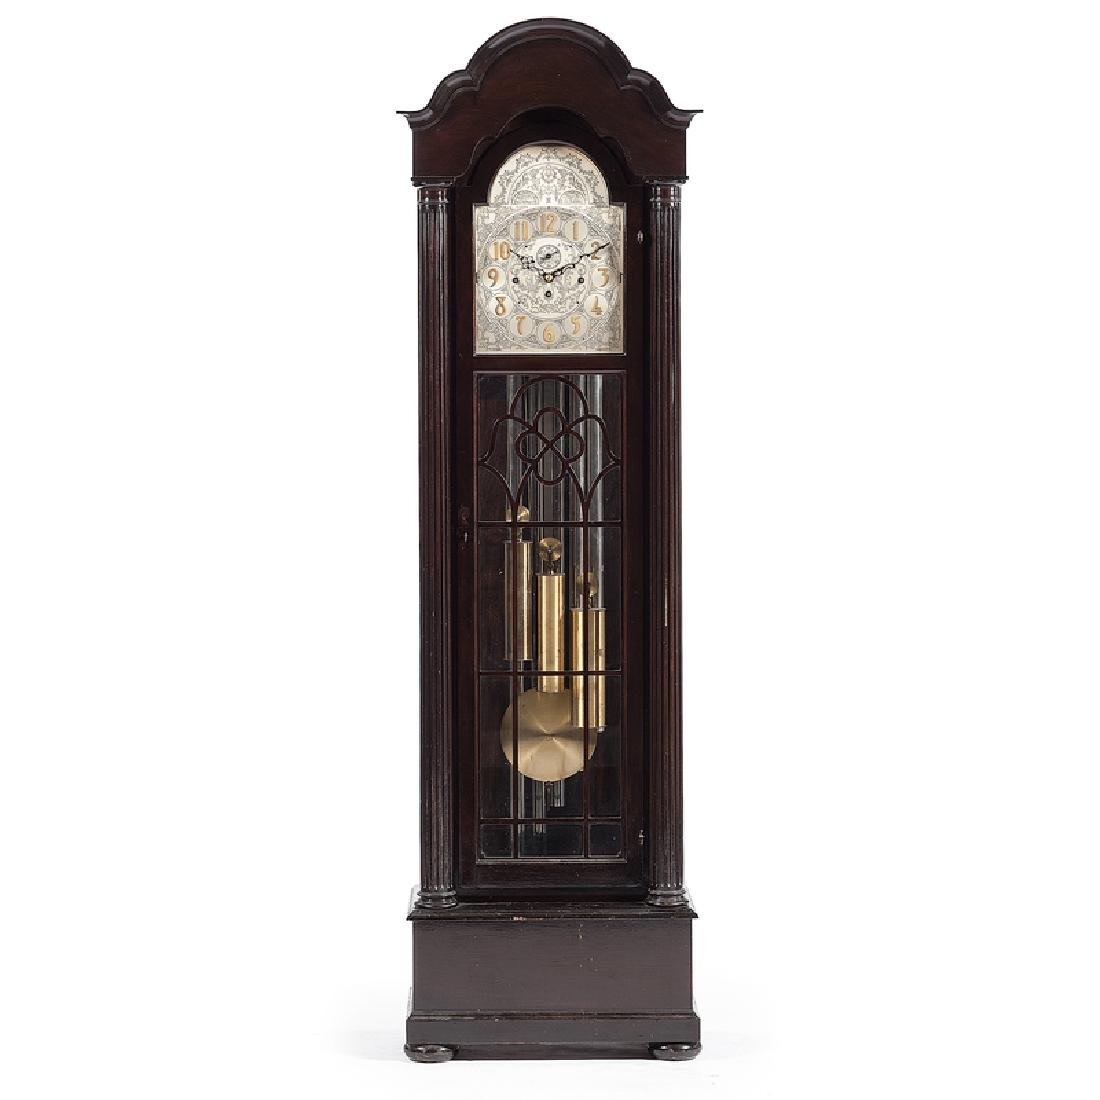 Herschede Five-Tube Tall Case Clock